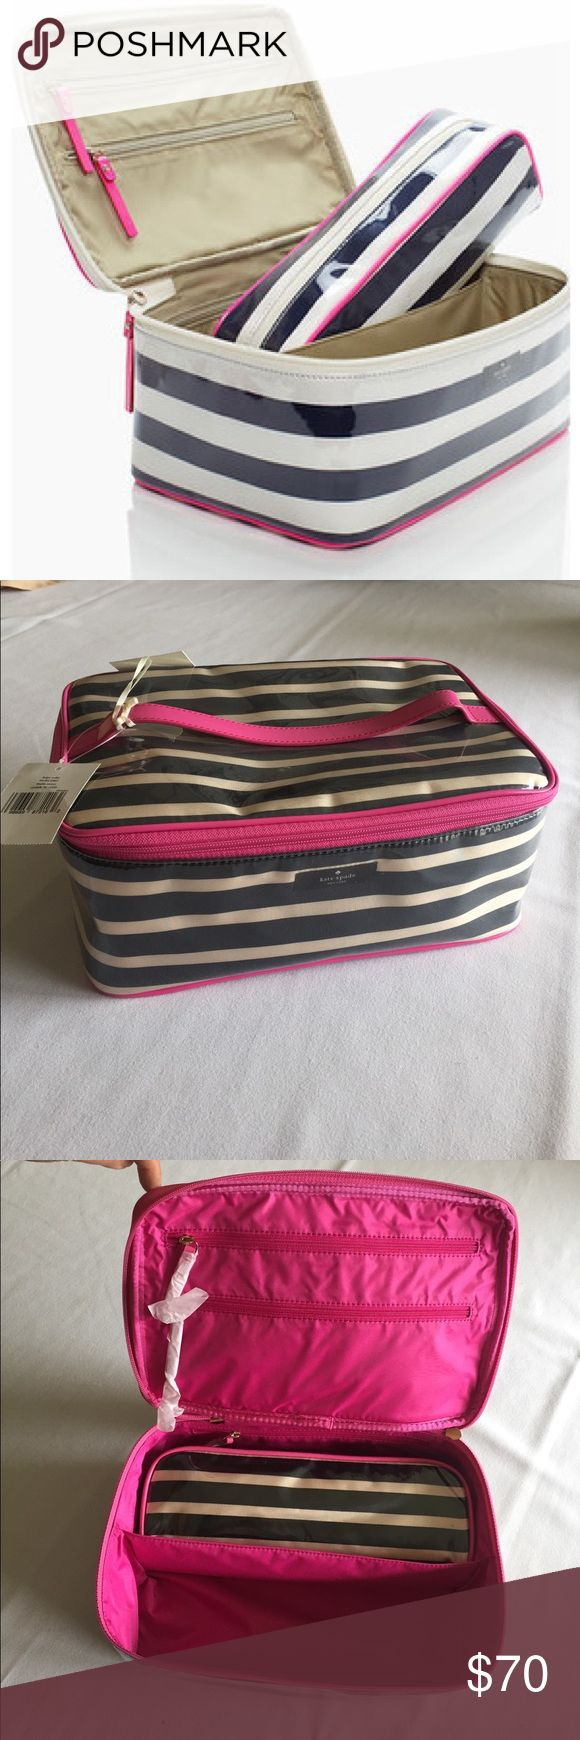 NWOT 🌟Kate Spade New York Lg Colin Cosmetic Case Vibrant colors and a sassy print brighten up a faille bag with a protective glossy coating. An included top-zip bag packs away into the case for on-the-go convenience. Black and cream two piece with hot pink trims 🌸 ✨Interior center divider; zip pockets. ✨PVC-coated polyester with leather trim. ✨By kate spade new york; imported. kate spade Makeup